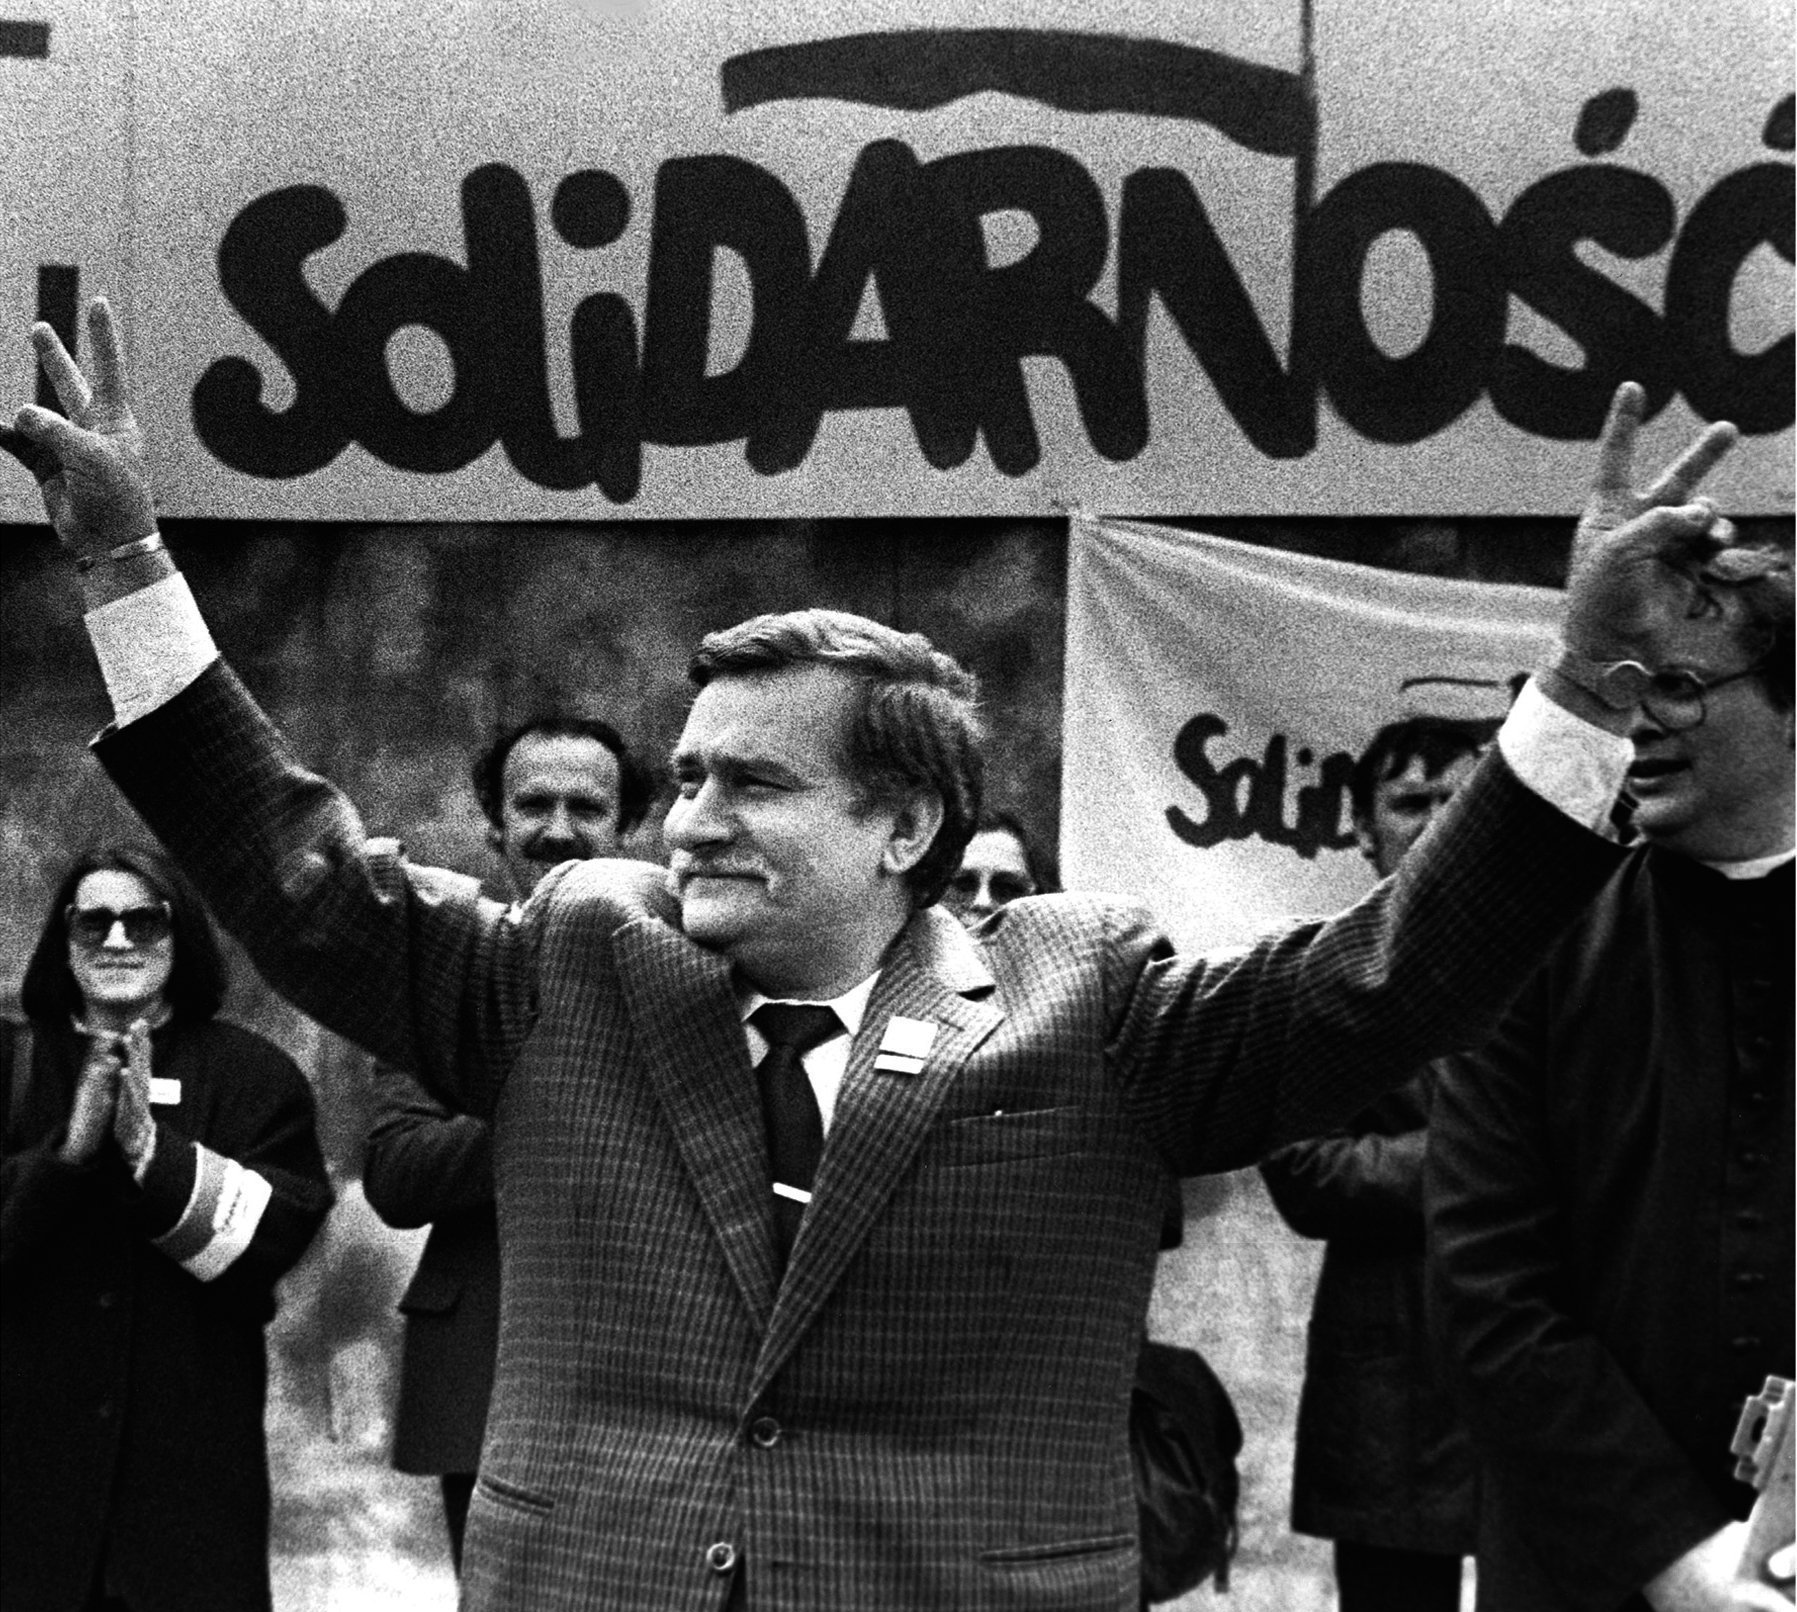 Polish President and Solidarity founding leader Lech Walesa shows v-sign in front of Solidarity poster during his presidential campaign in Plock in this May 7, 1989 file photo